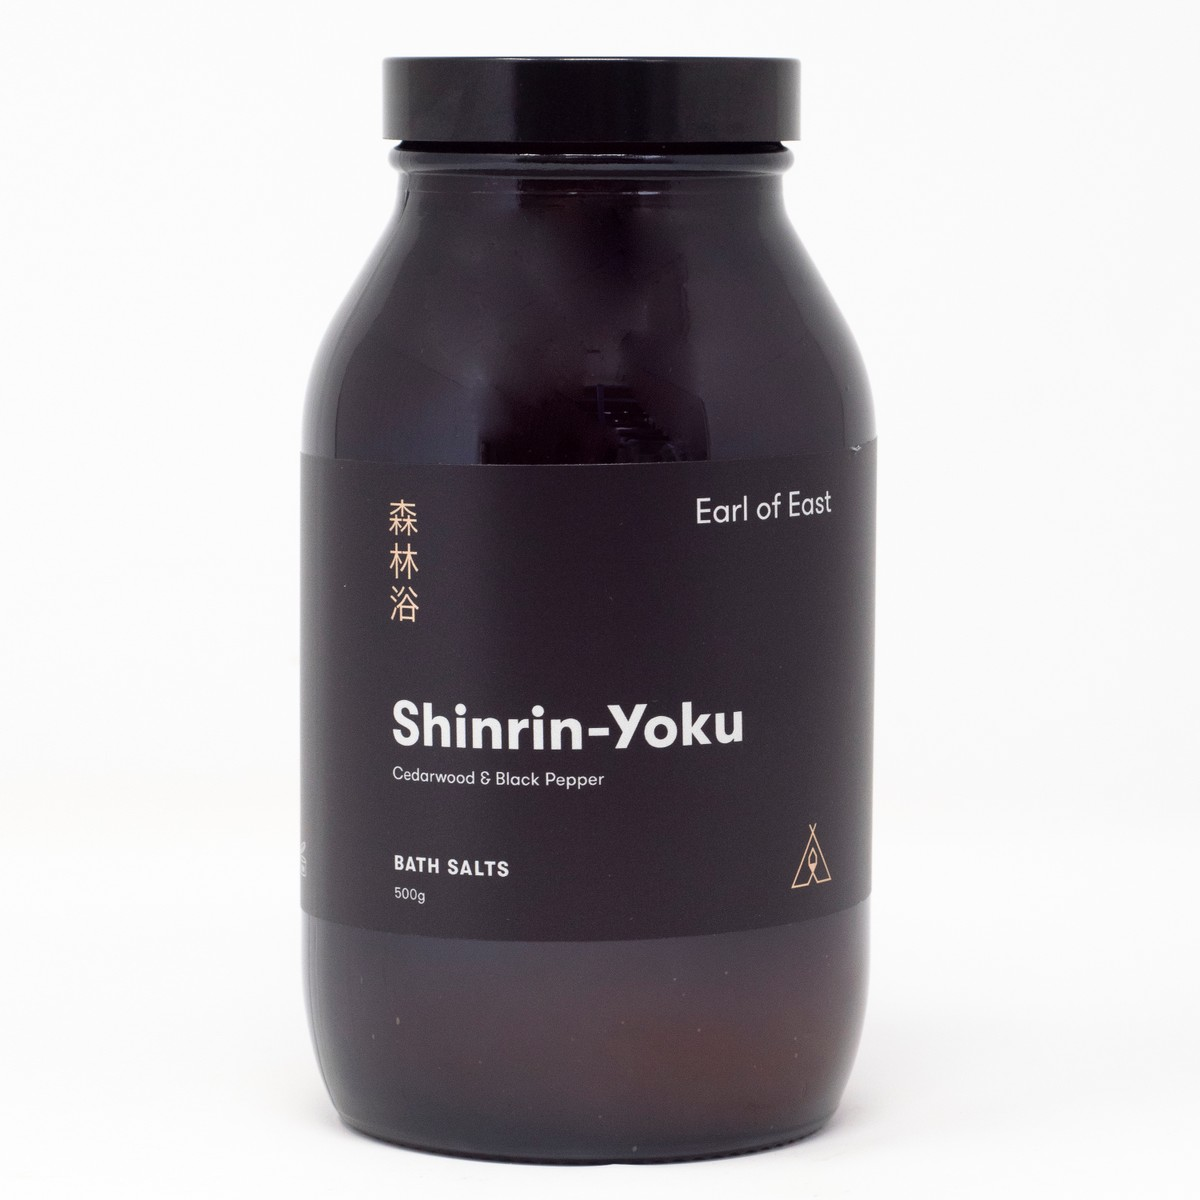 Photo of Shinrinyoku Bath Salts